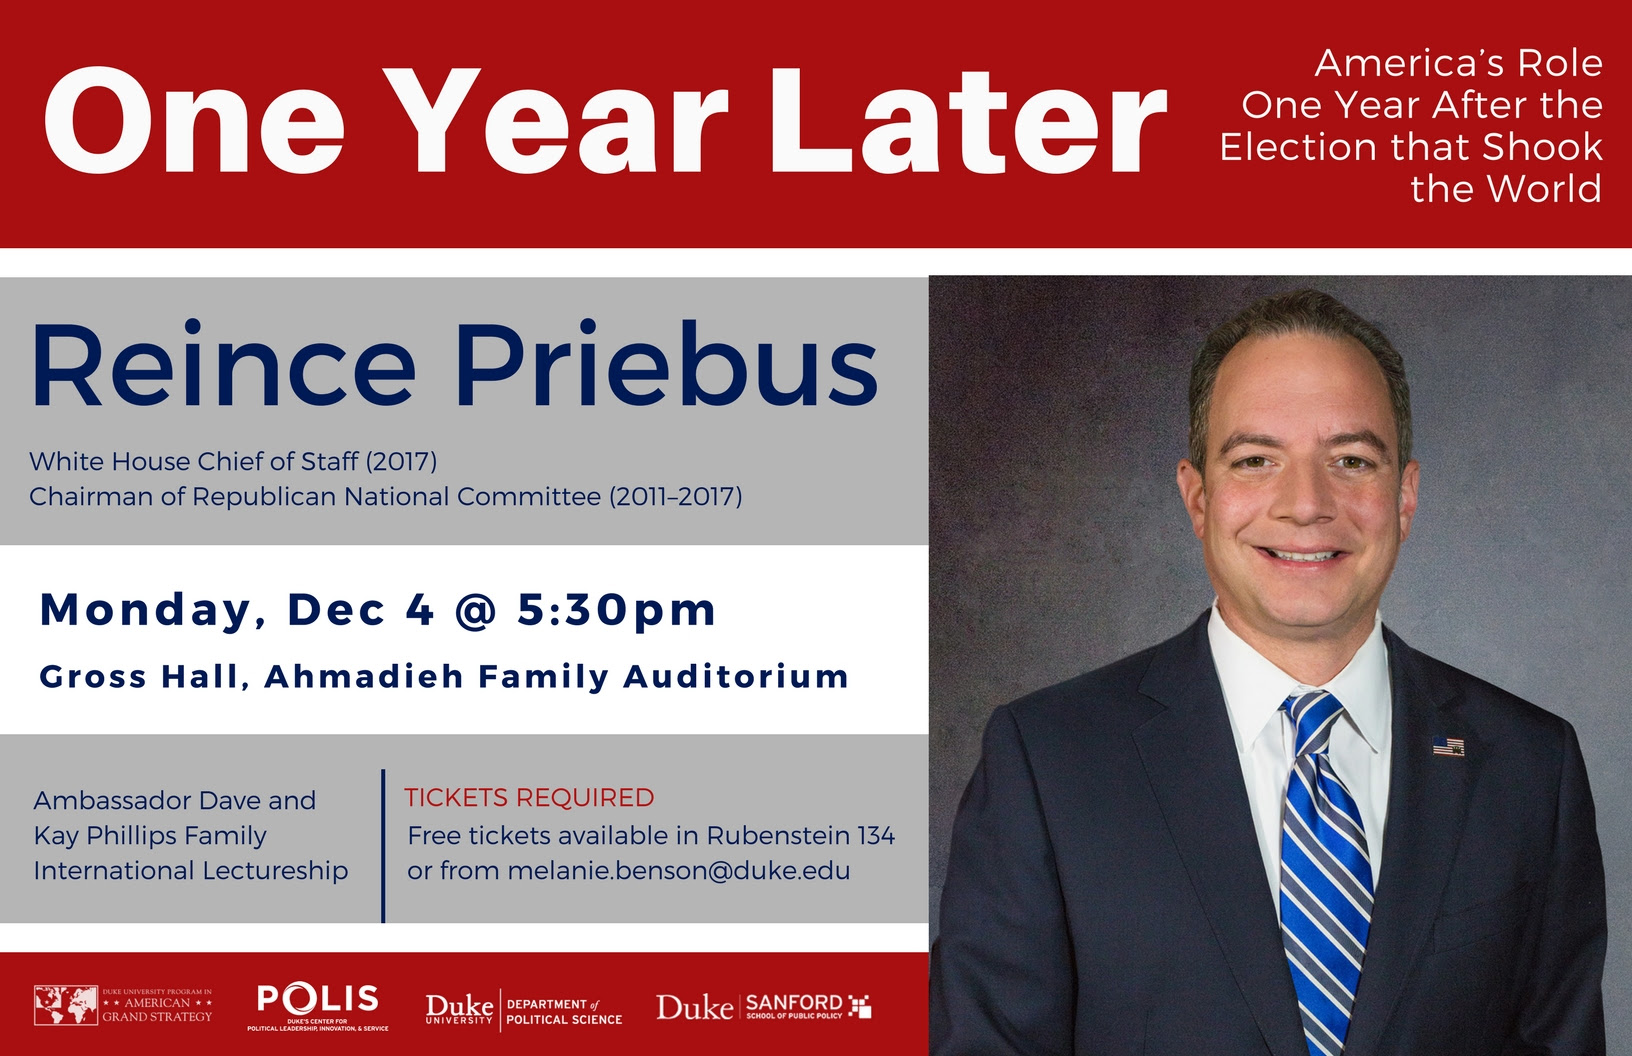 One Year Later: America's Role One Year After the Election that Shook the World @ Gross Hall, Ahmadieh Family Auditorium   Durham   North Carolina   United States